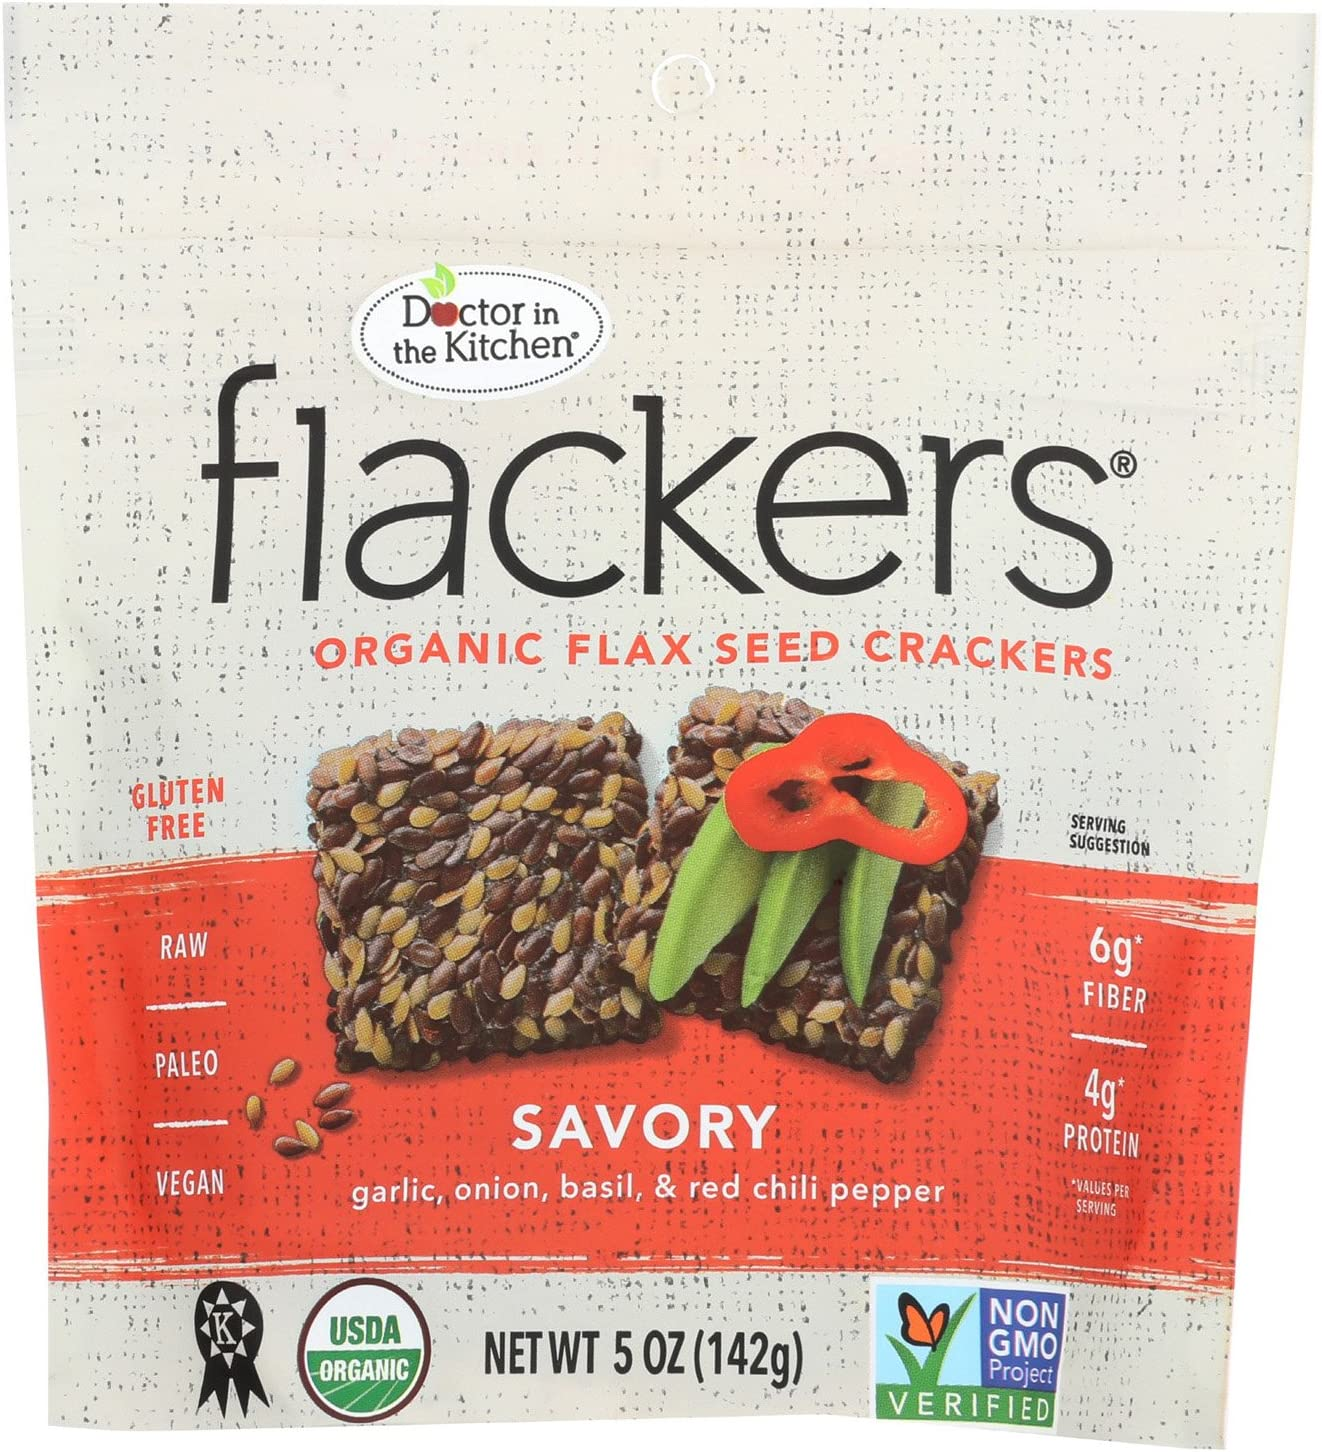 Dr. In The Topics on TV Kitchen National uniform free shipping Flackers Organic Crackers Seed Savory Flax -